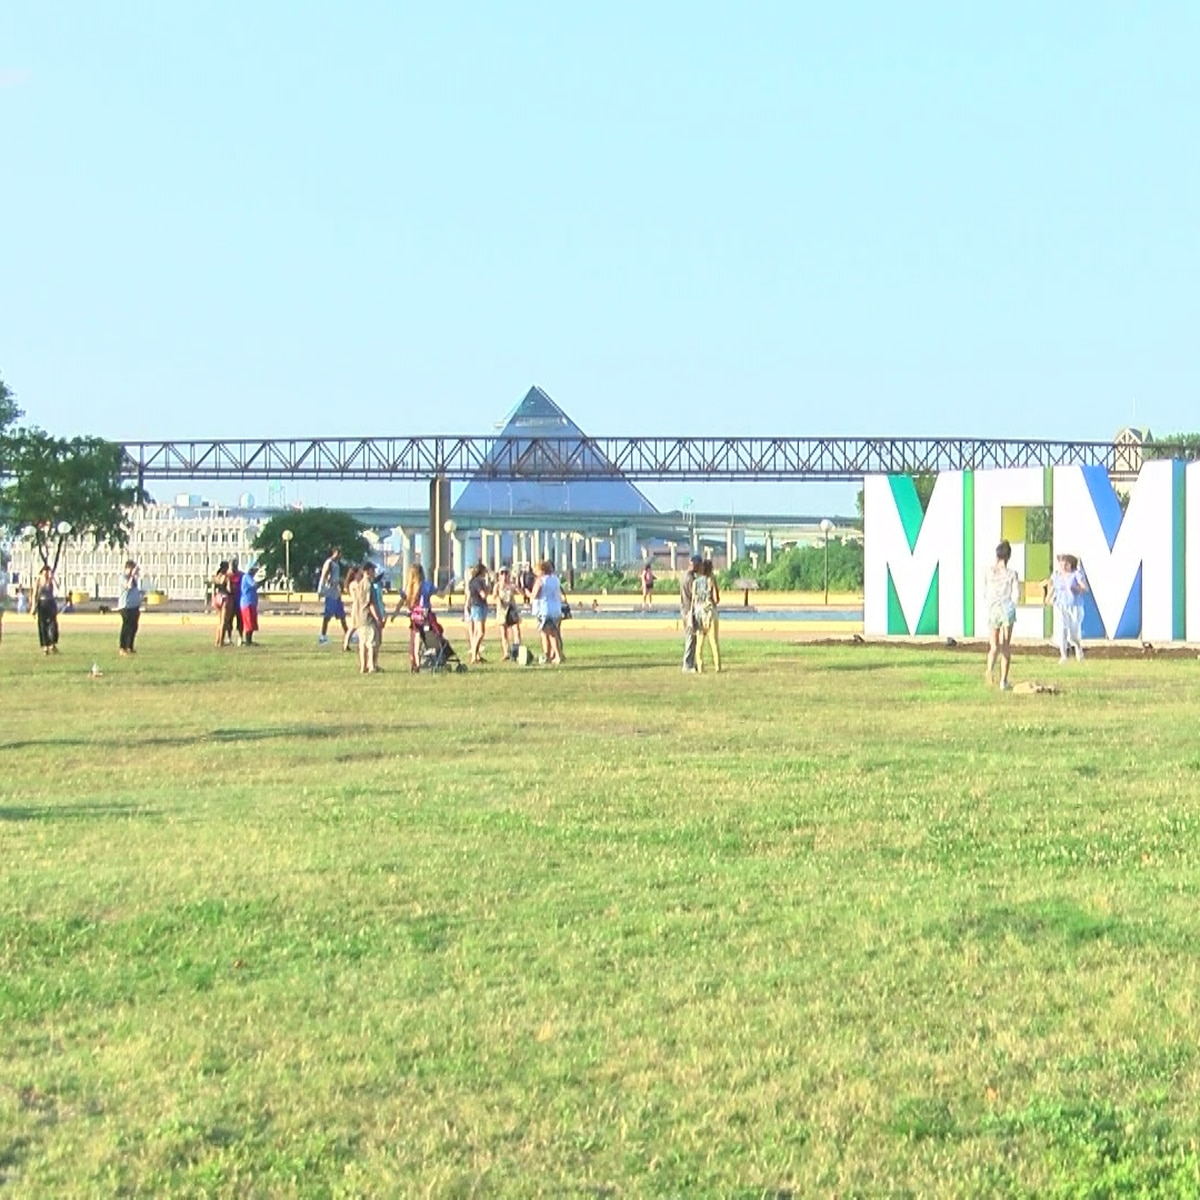 Mississippi River Park Partnership brings new attractions to the riverfront